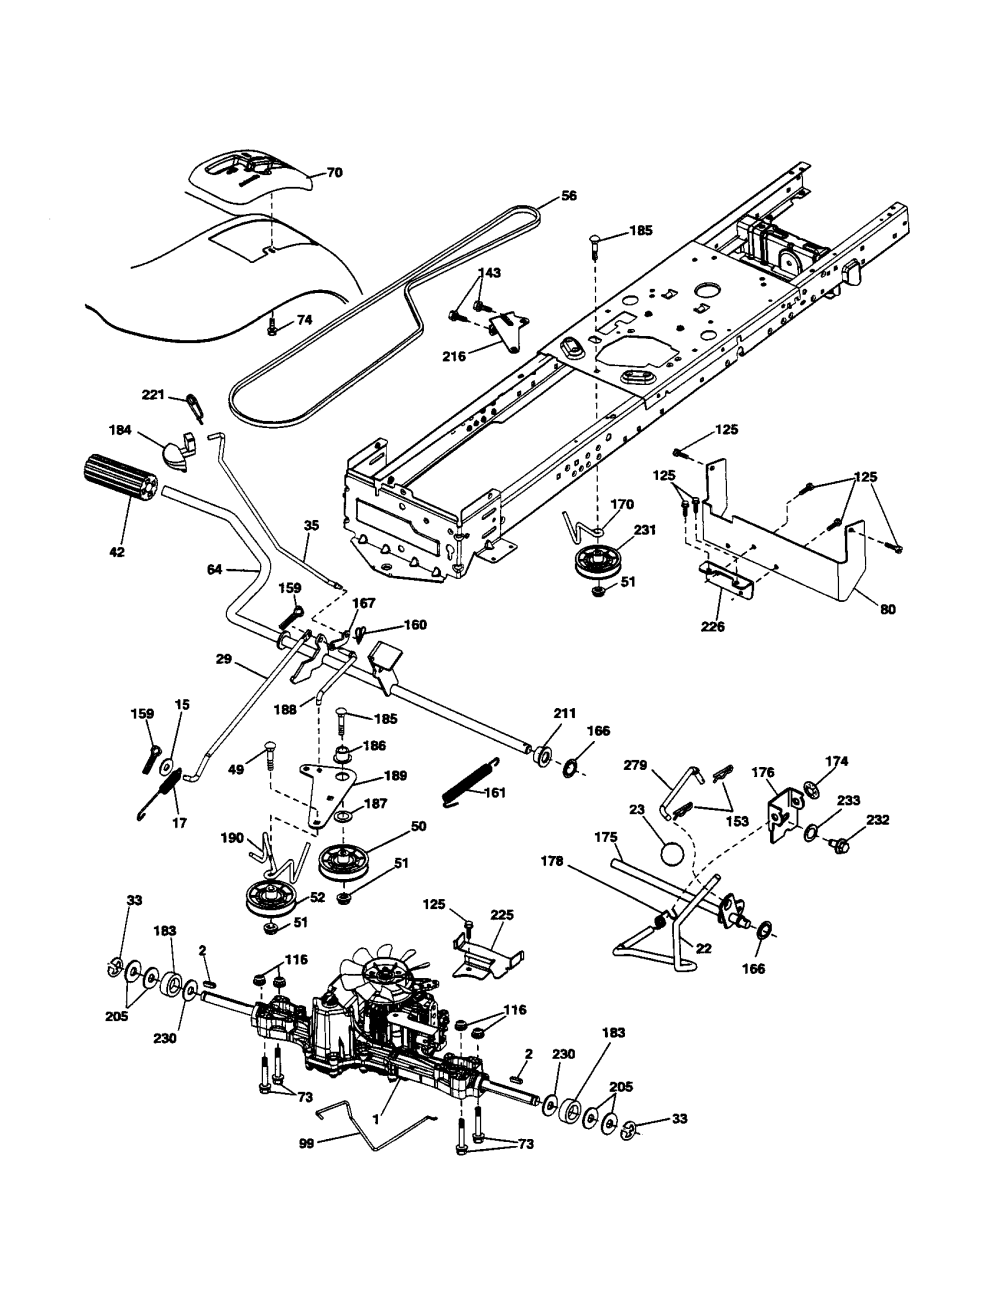 medium resolution of  ayp wiring diagram looking for ariens model 93604200 front engine lawn tractor repair on columbia wiring diagram